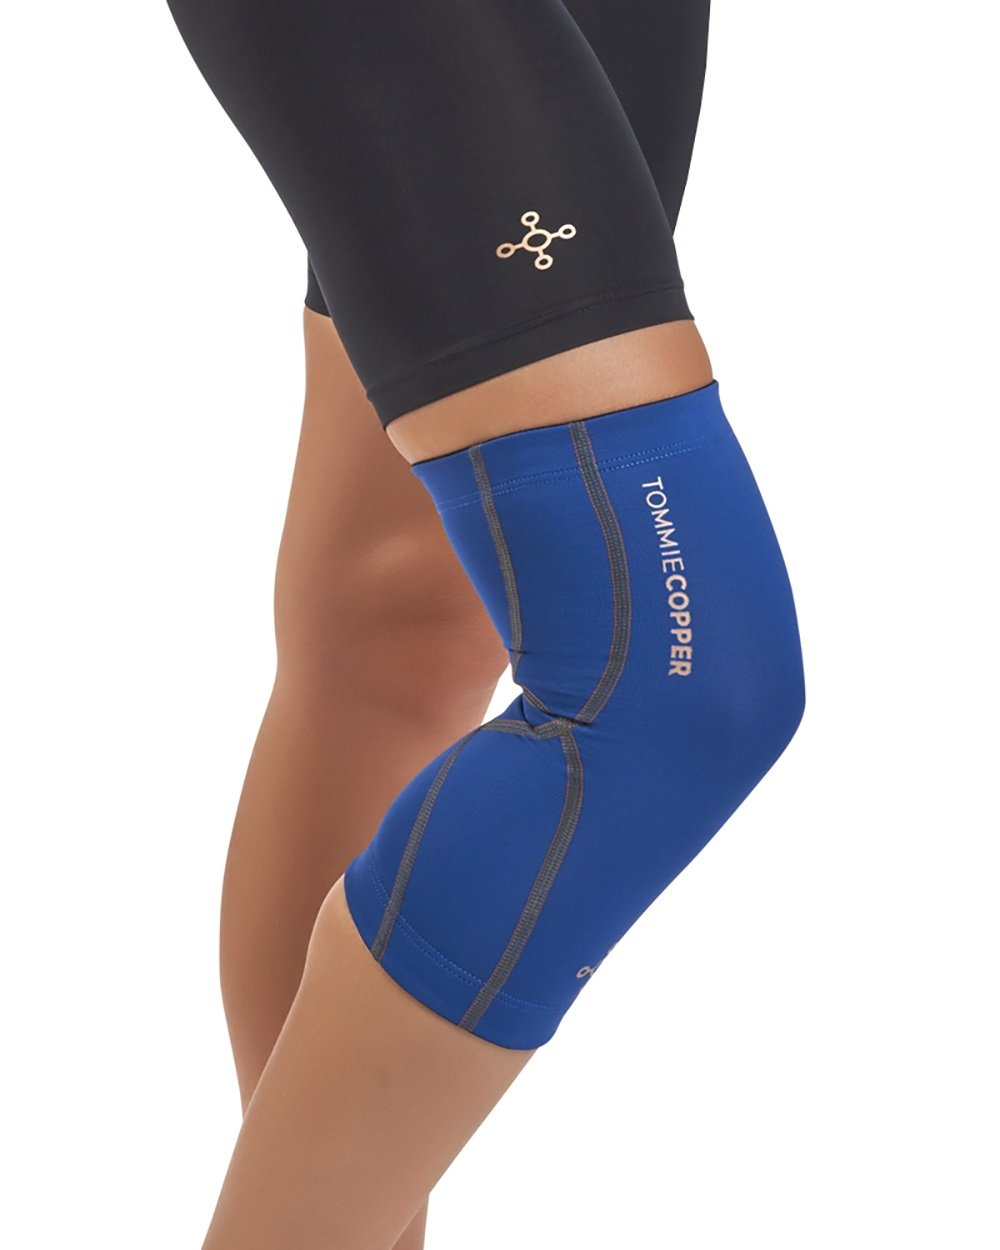 Tommie Copper Women's Performance Knee Sleeves 2.0, X-Large, Cobalt Blue